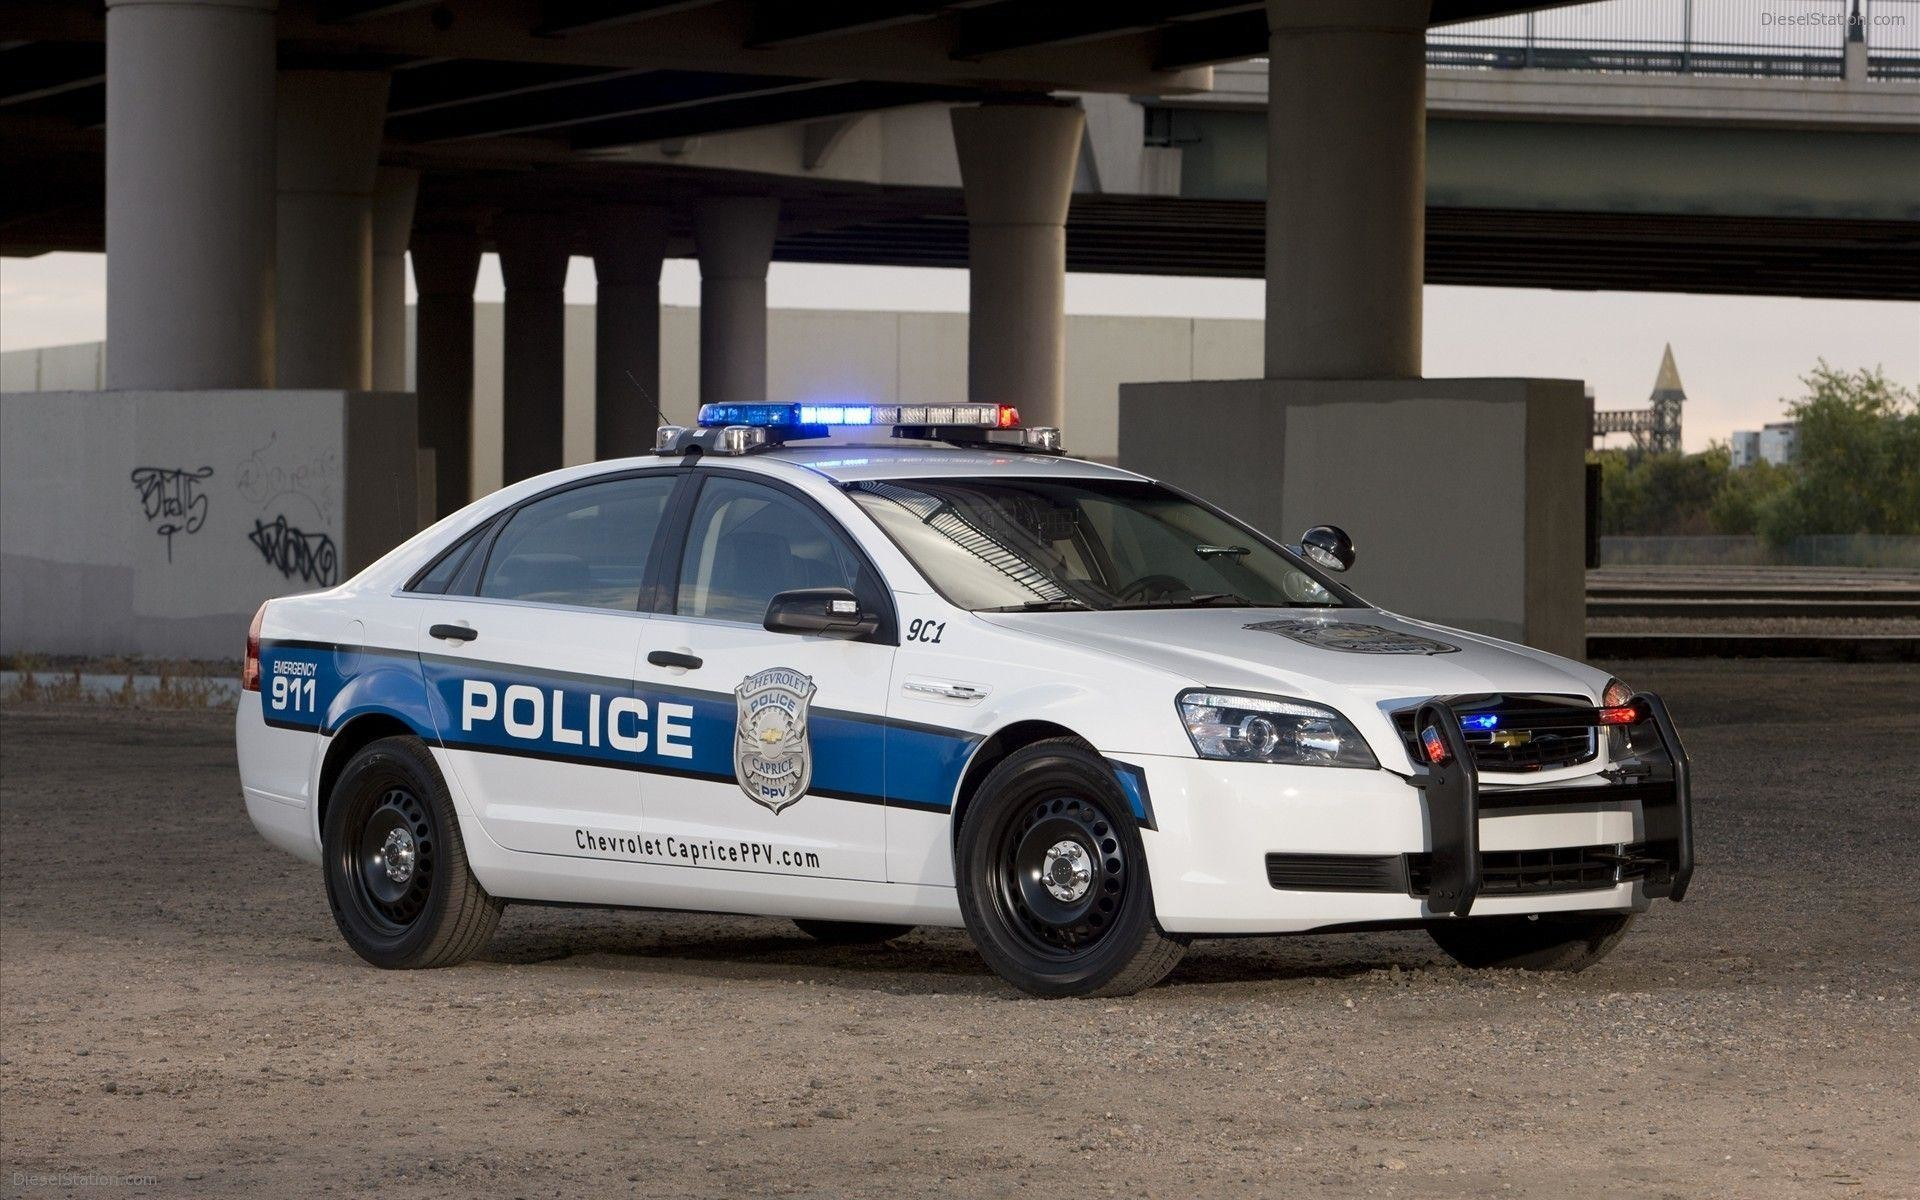 Us police car wallpaper | Wallpapers wide cars